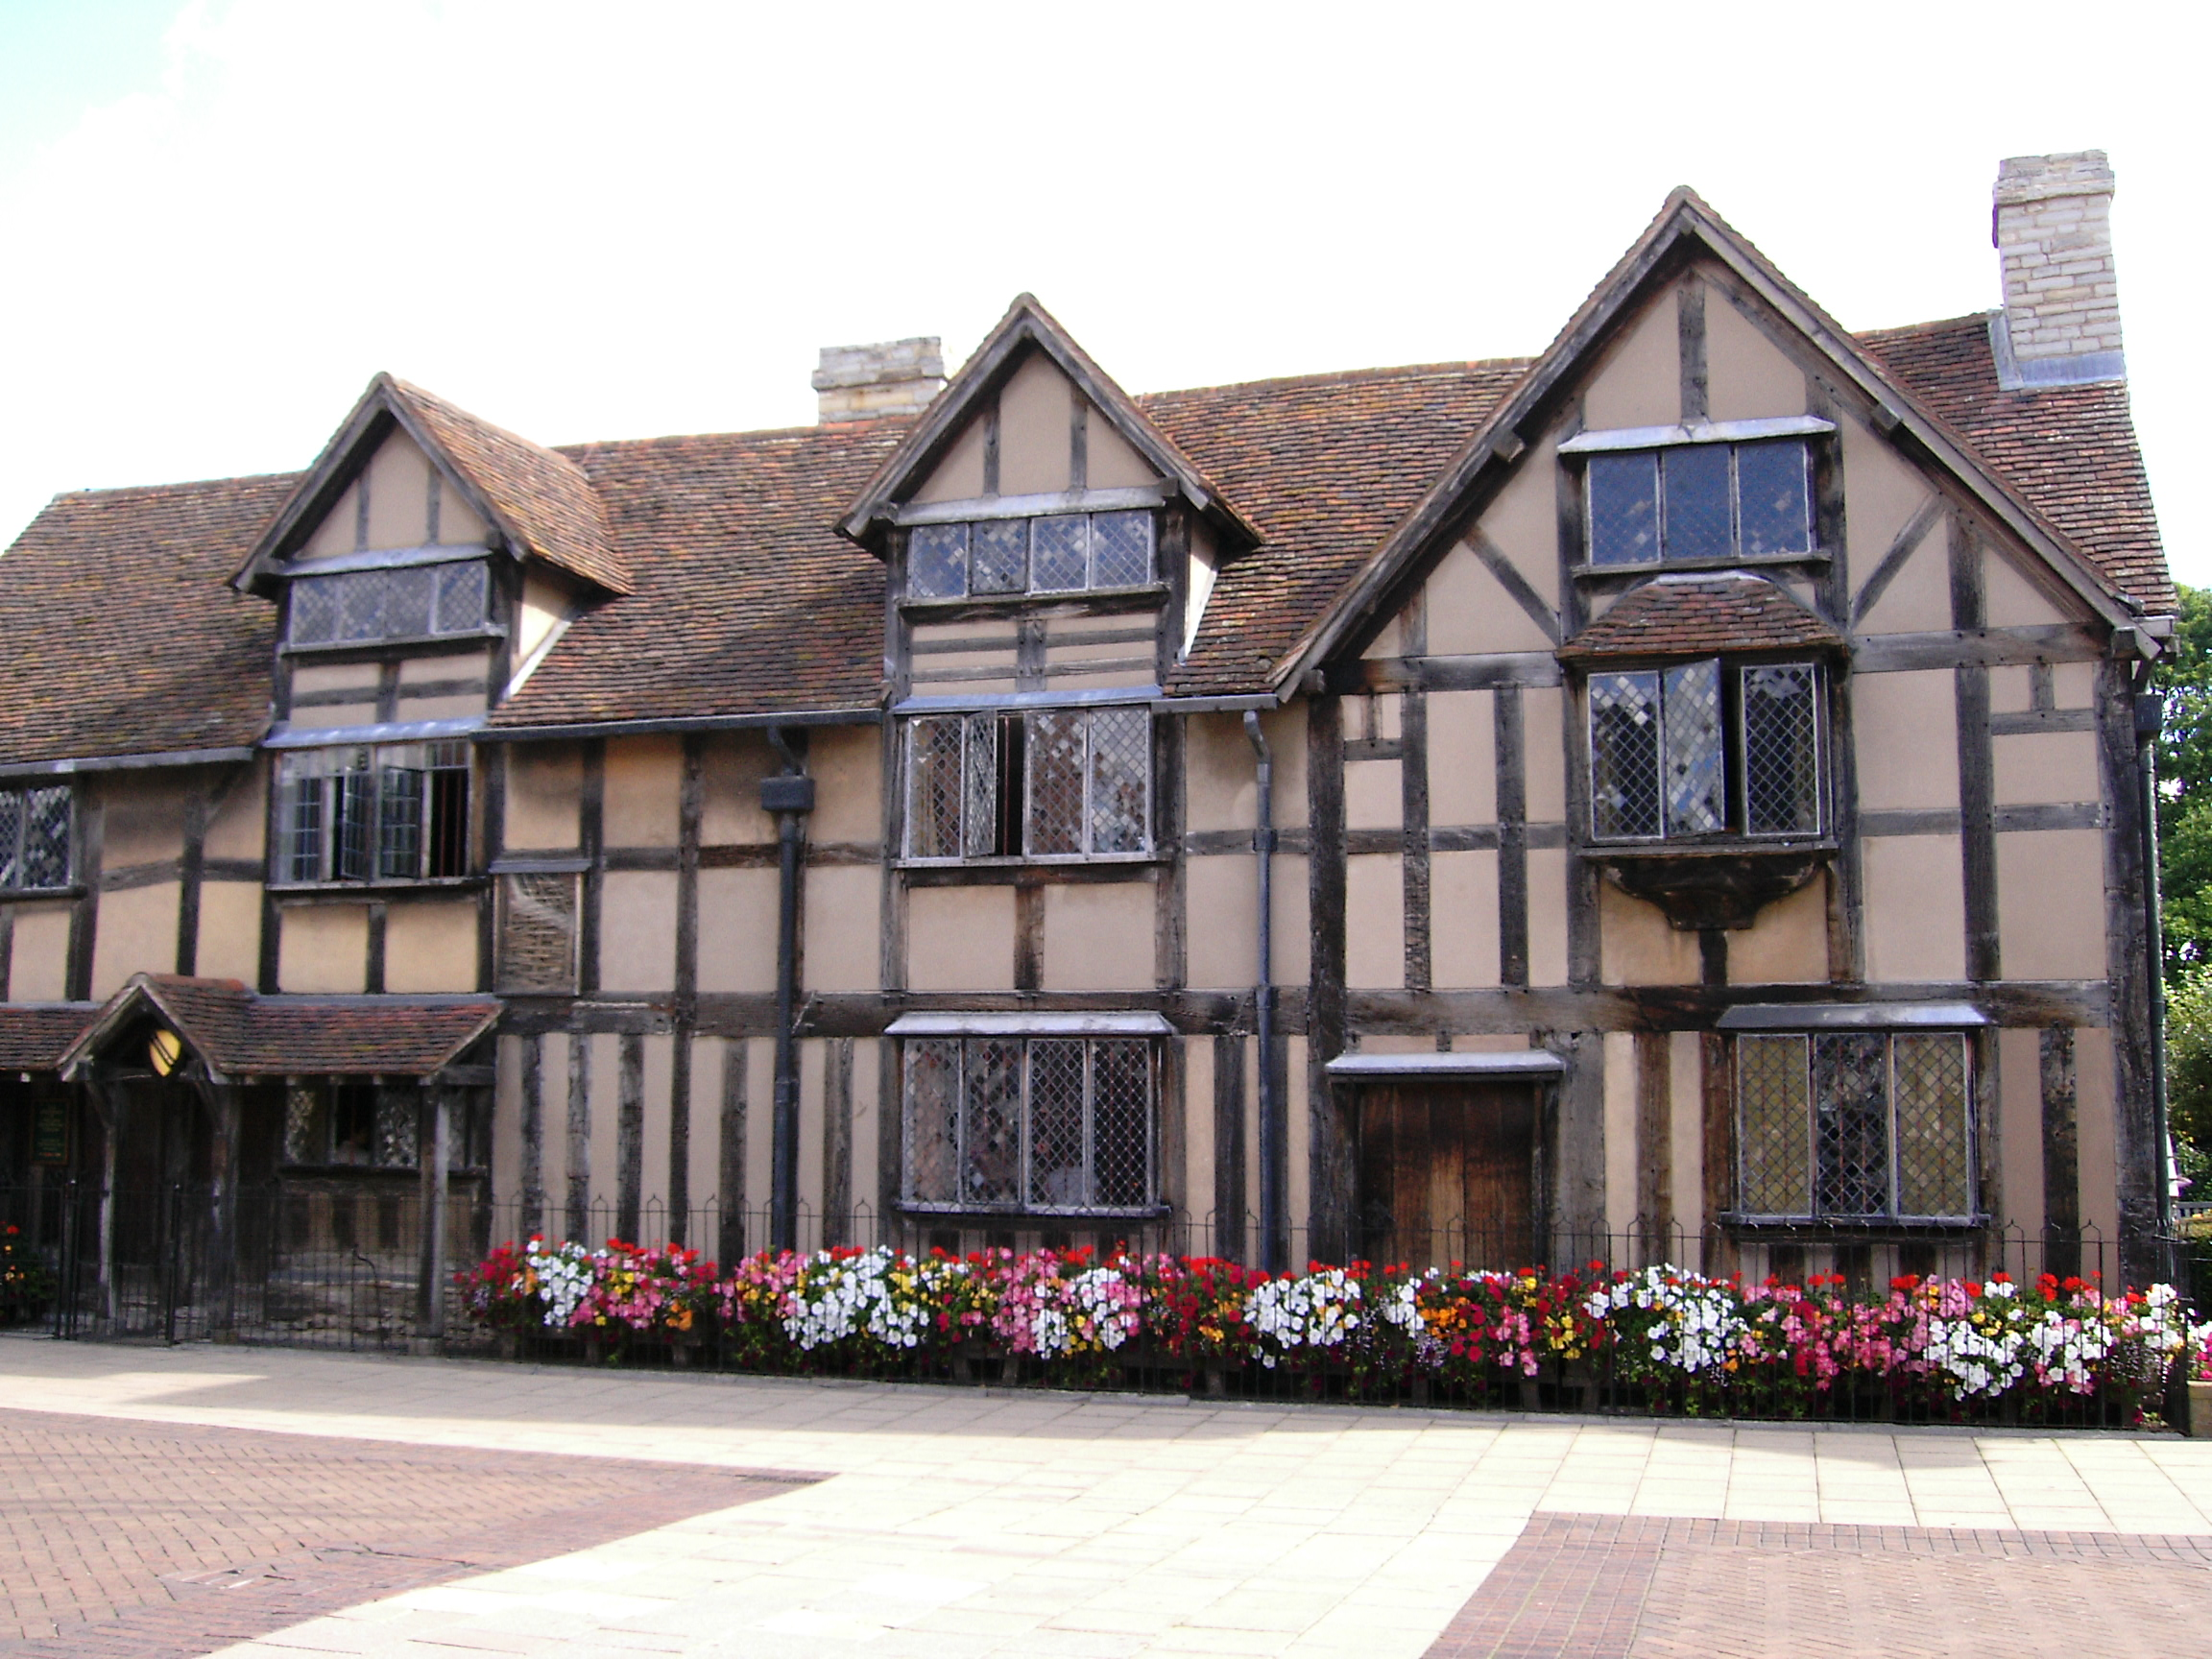 Shakespeare's Birthplace2